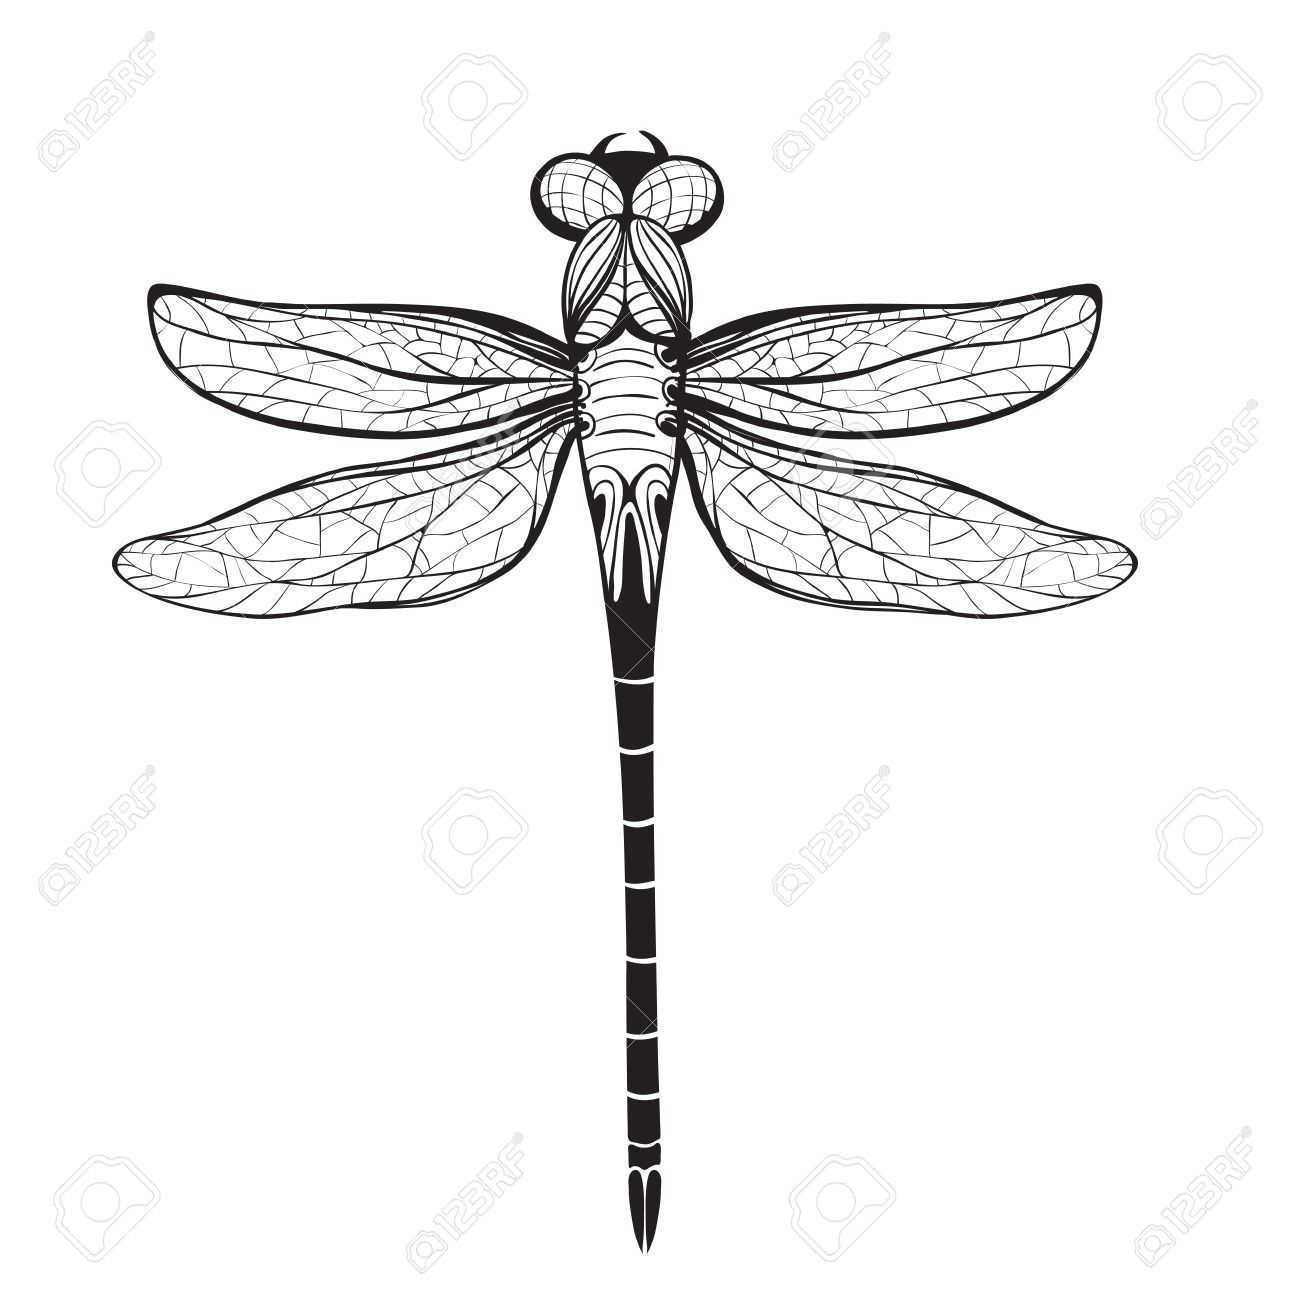 Dragonfly Insect Black Inky Drawing Flying Adder One Color